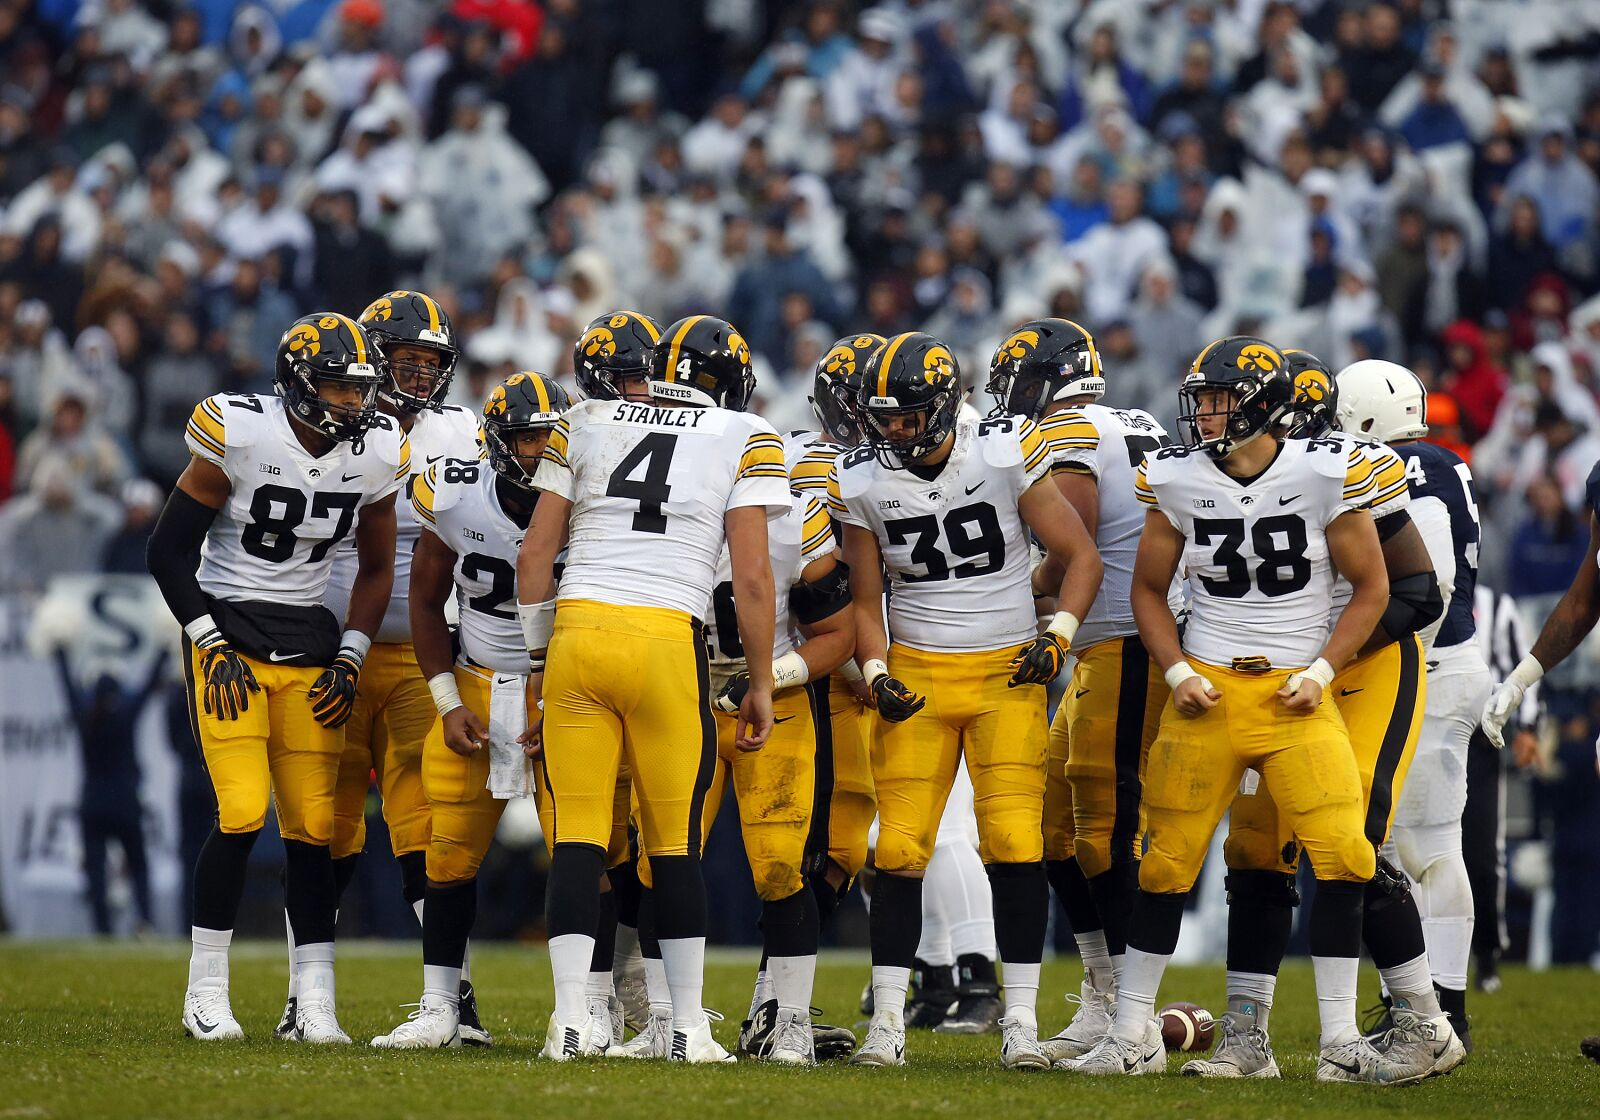 Iowa football: Interior offensive line more in flux than initially thought